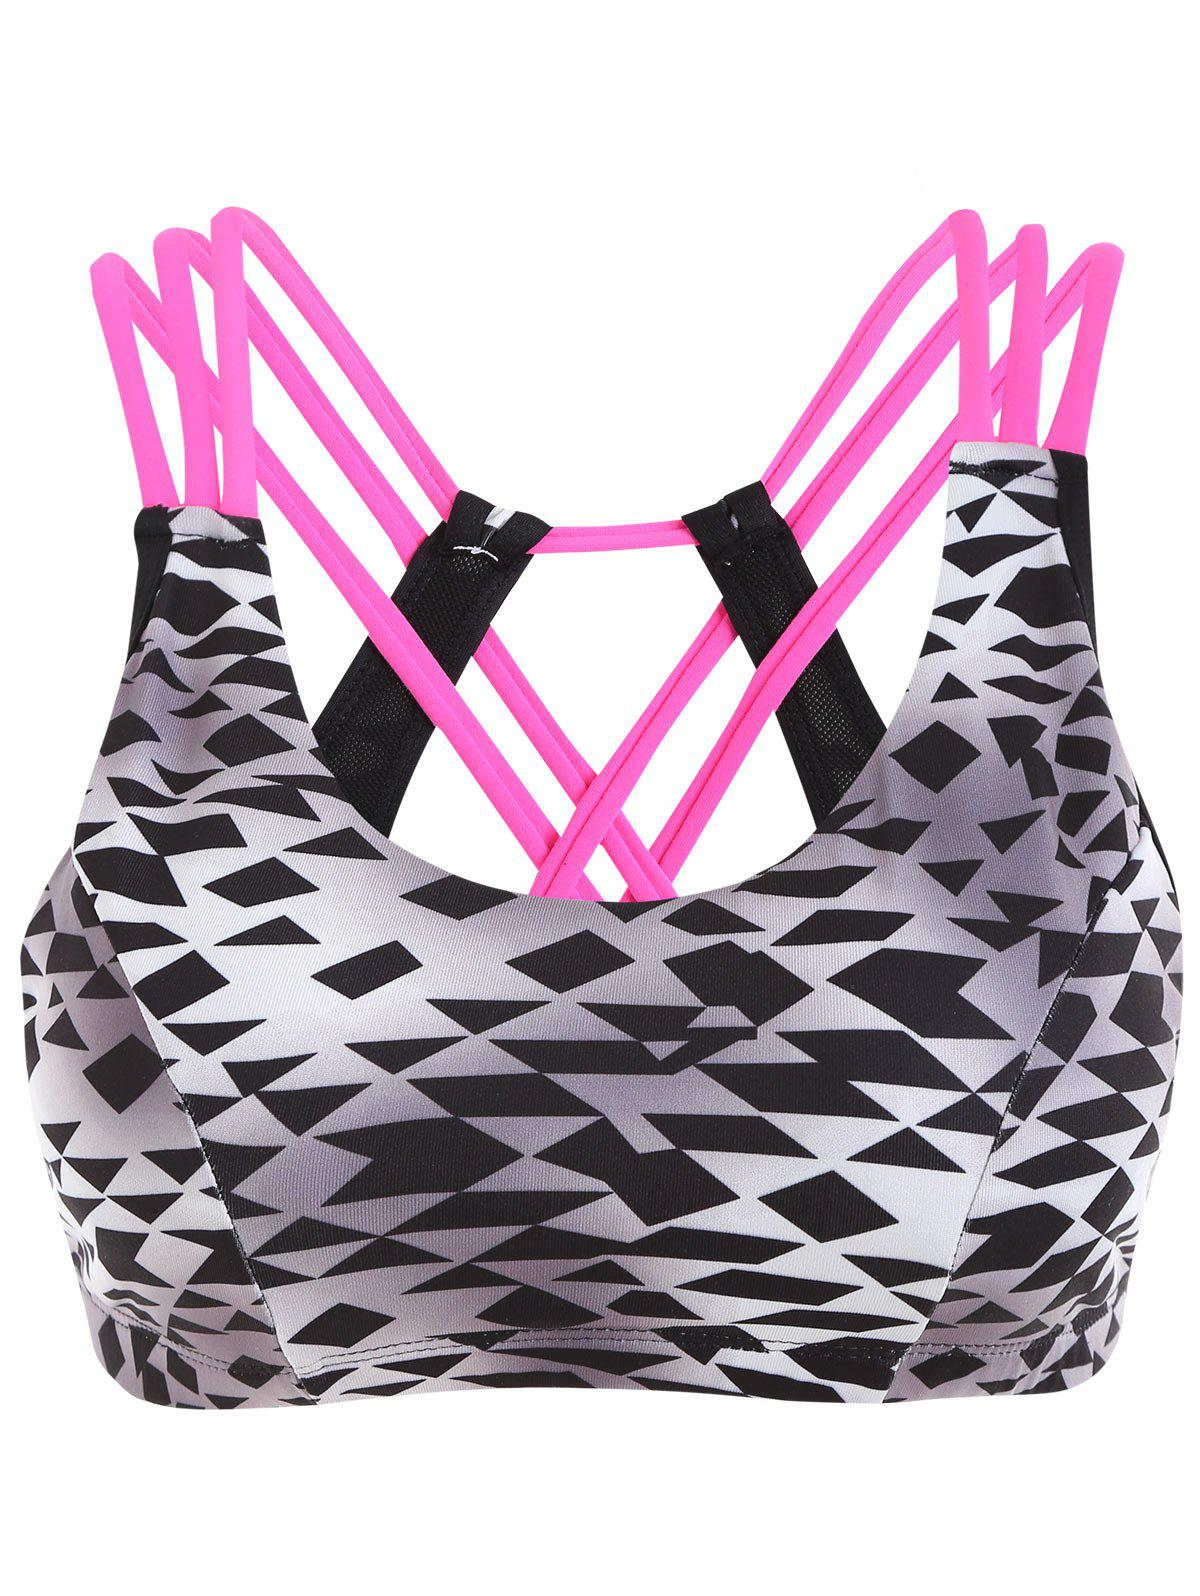 Geometric Print Strappy Sporty BraWOMEN<br><br>Size: XL; Color: BLACK AND GREY; Materials: Nylon,Spandex; Bra Style: Padded; Cup Shape: 5/8 Cup; Support Type: Wire Free; Strap Type: Non-adjusted Straps; Closure Style: None; Pattern Type: Geometric; Embellishment: None; Weight: 0.1800kg; Package Contents: 1 x Bra;